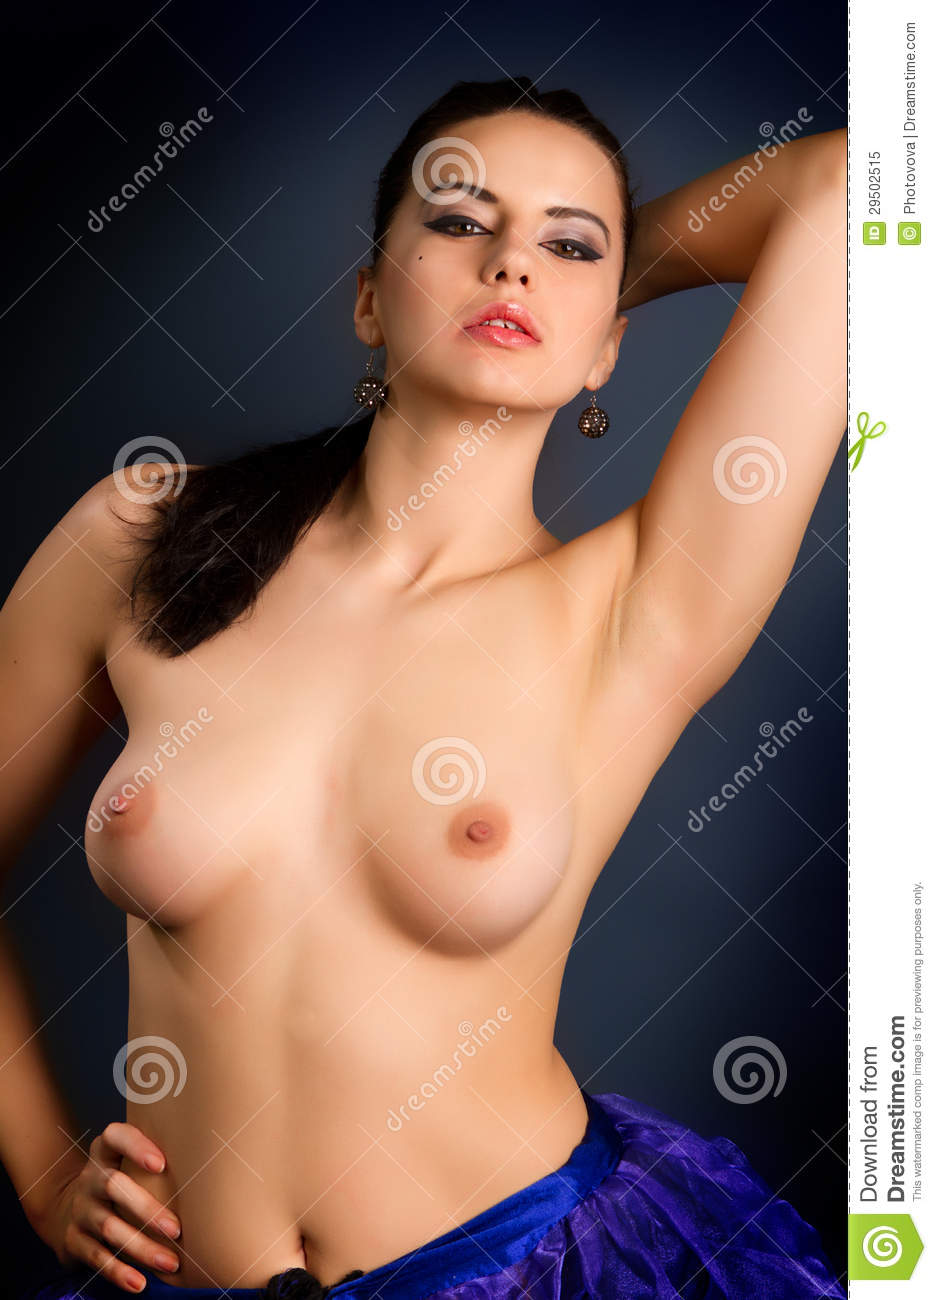 Getting naked woman